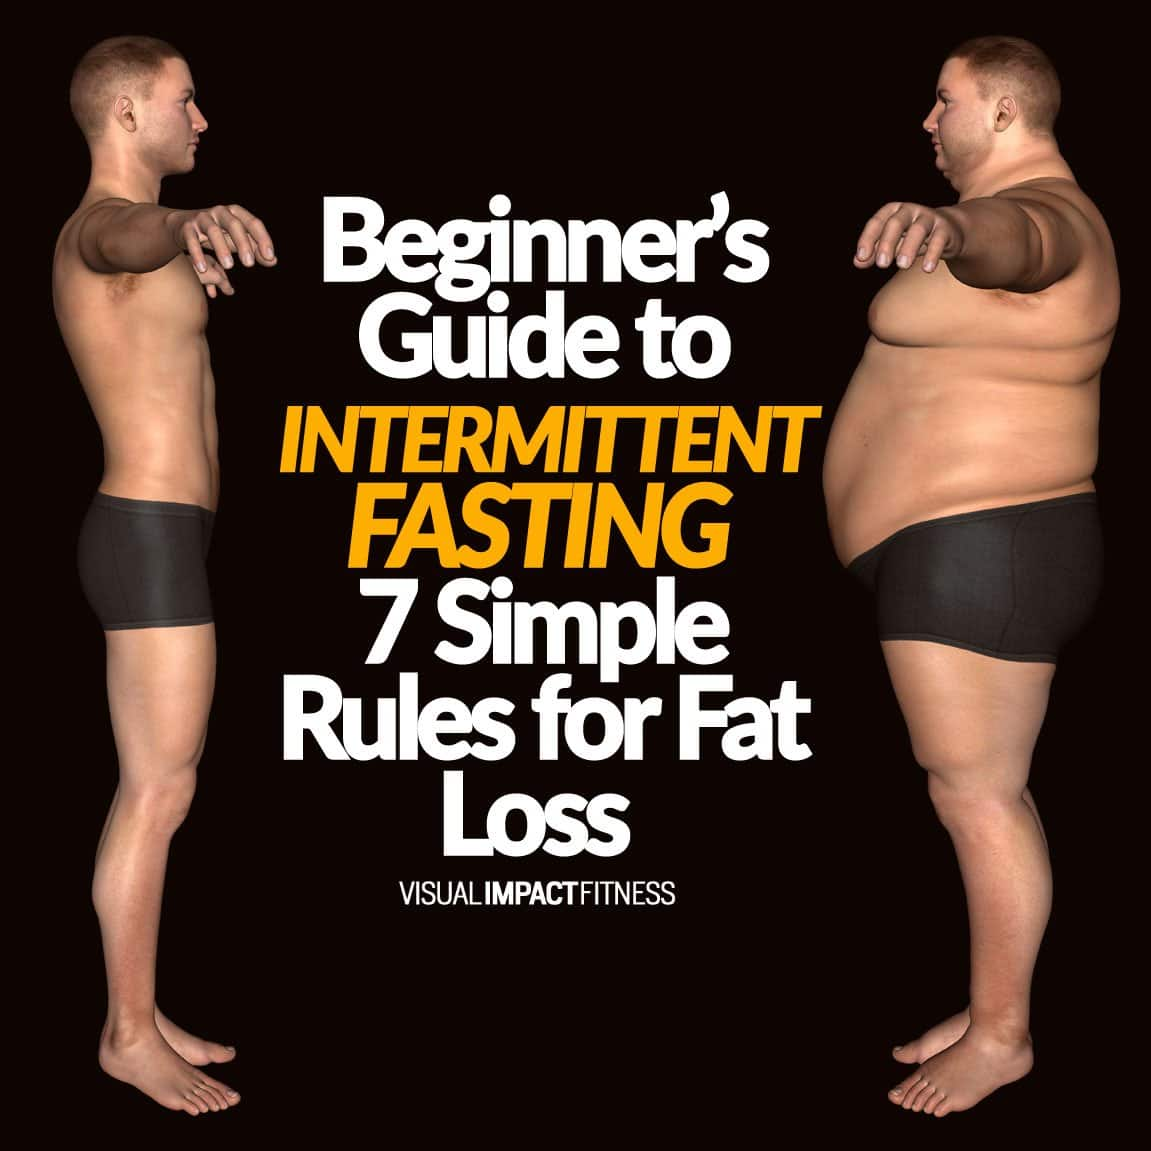 Beginner's guide to INTERMITTENT FASTING 7 Simple Rules for Fat Loss